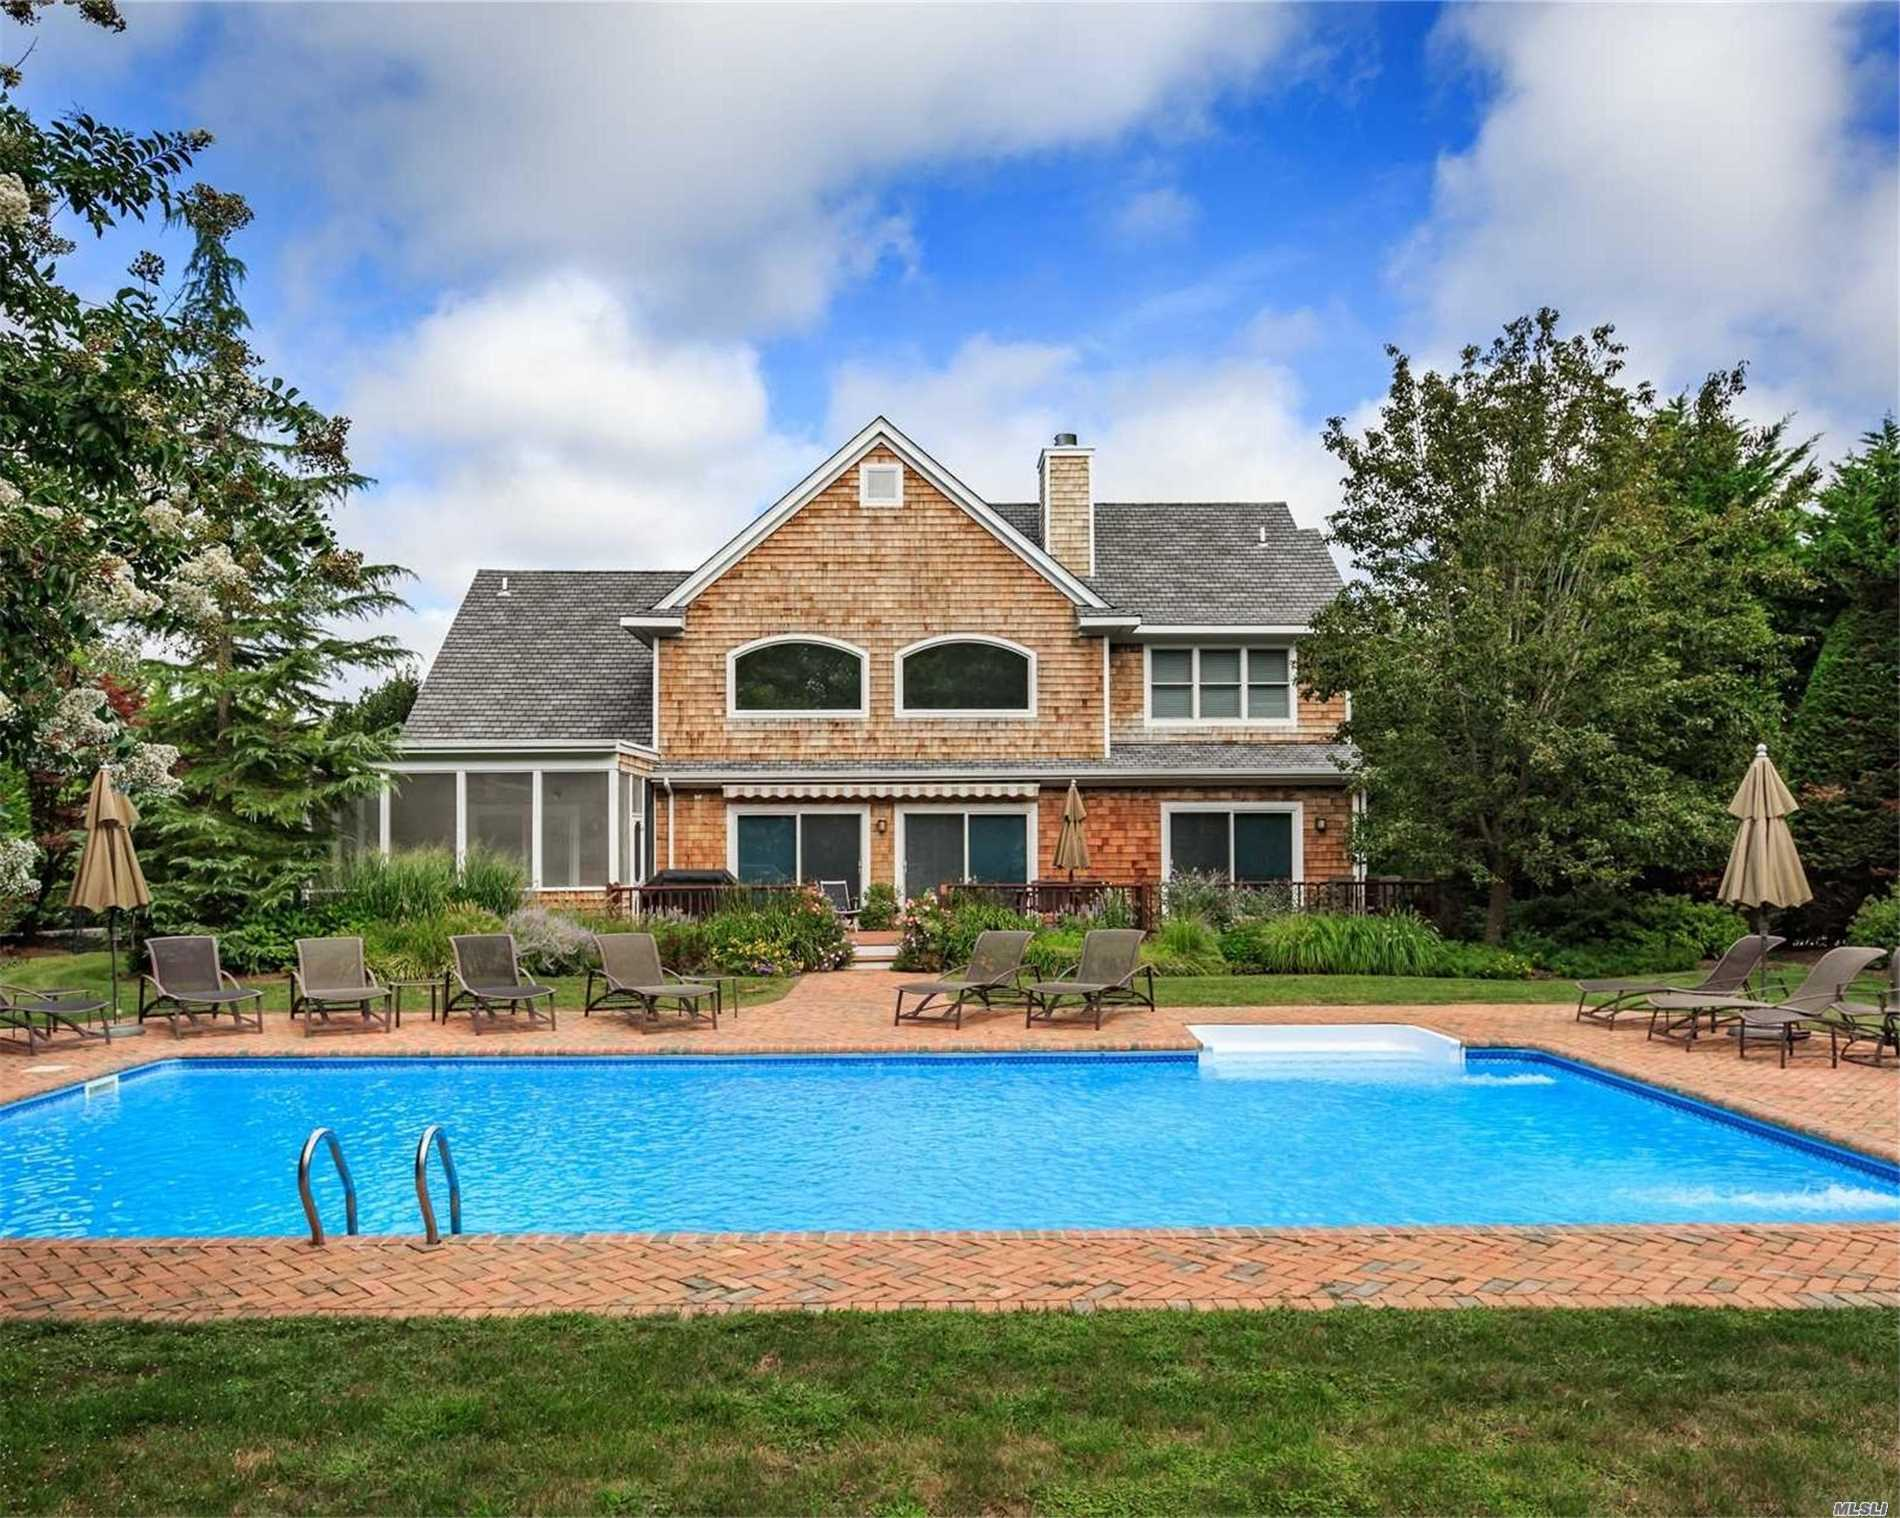 Photo of home for sale at 28 Post Fields Ln, Quogue NY